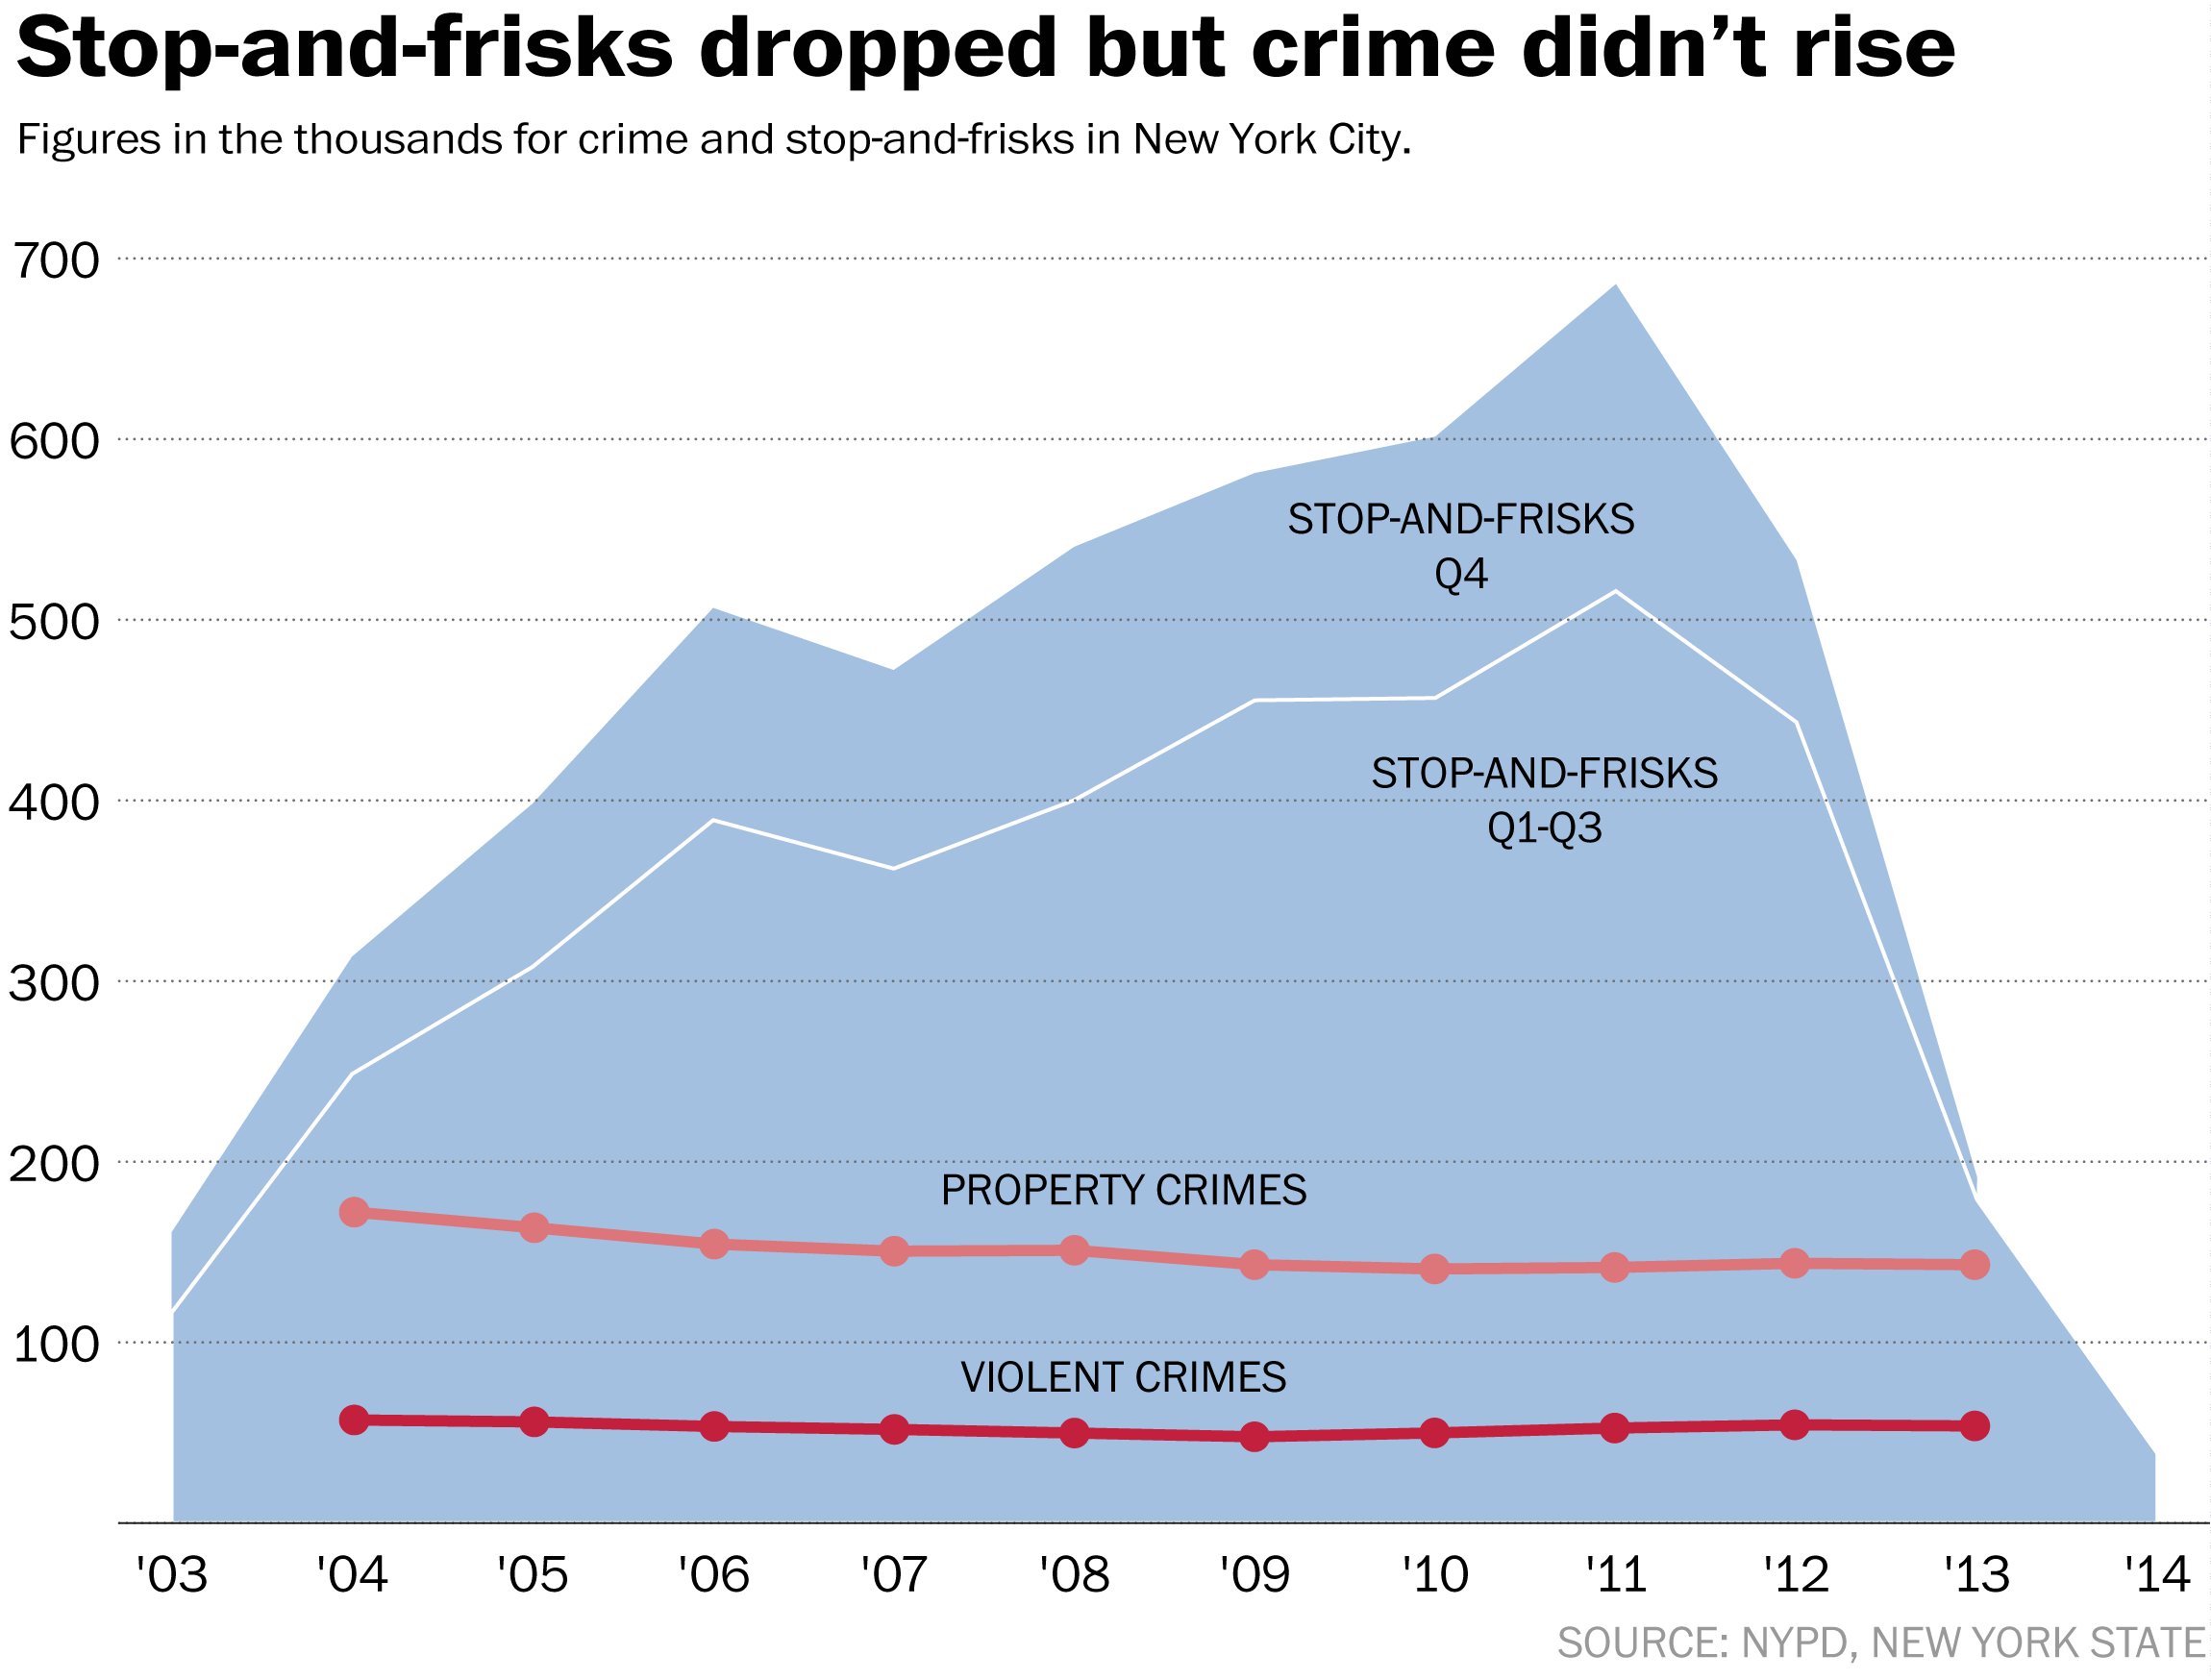 Number of Stop & Frisks Compared to Crime Rates in New York City, 2003-2014